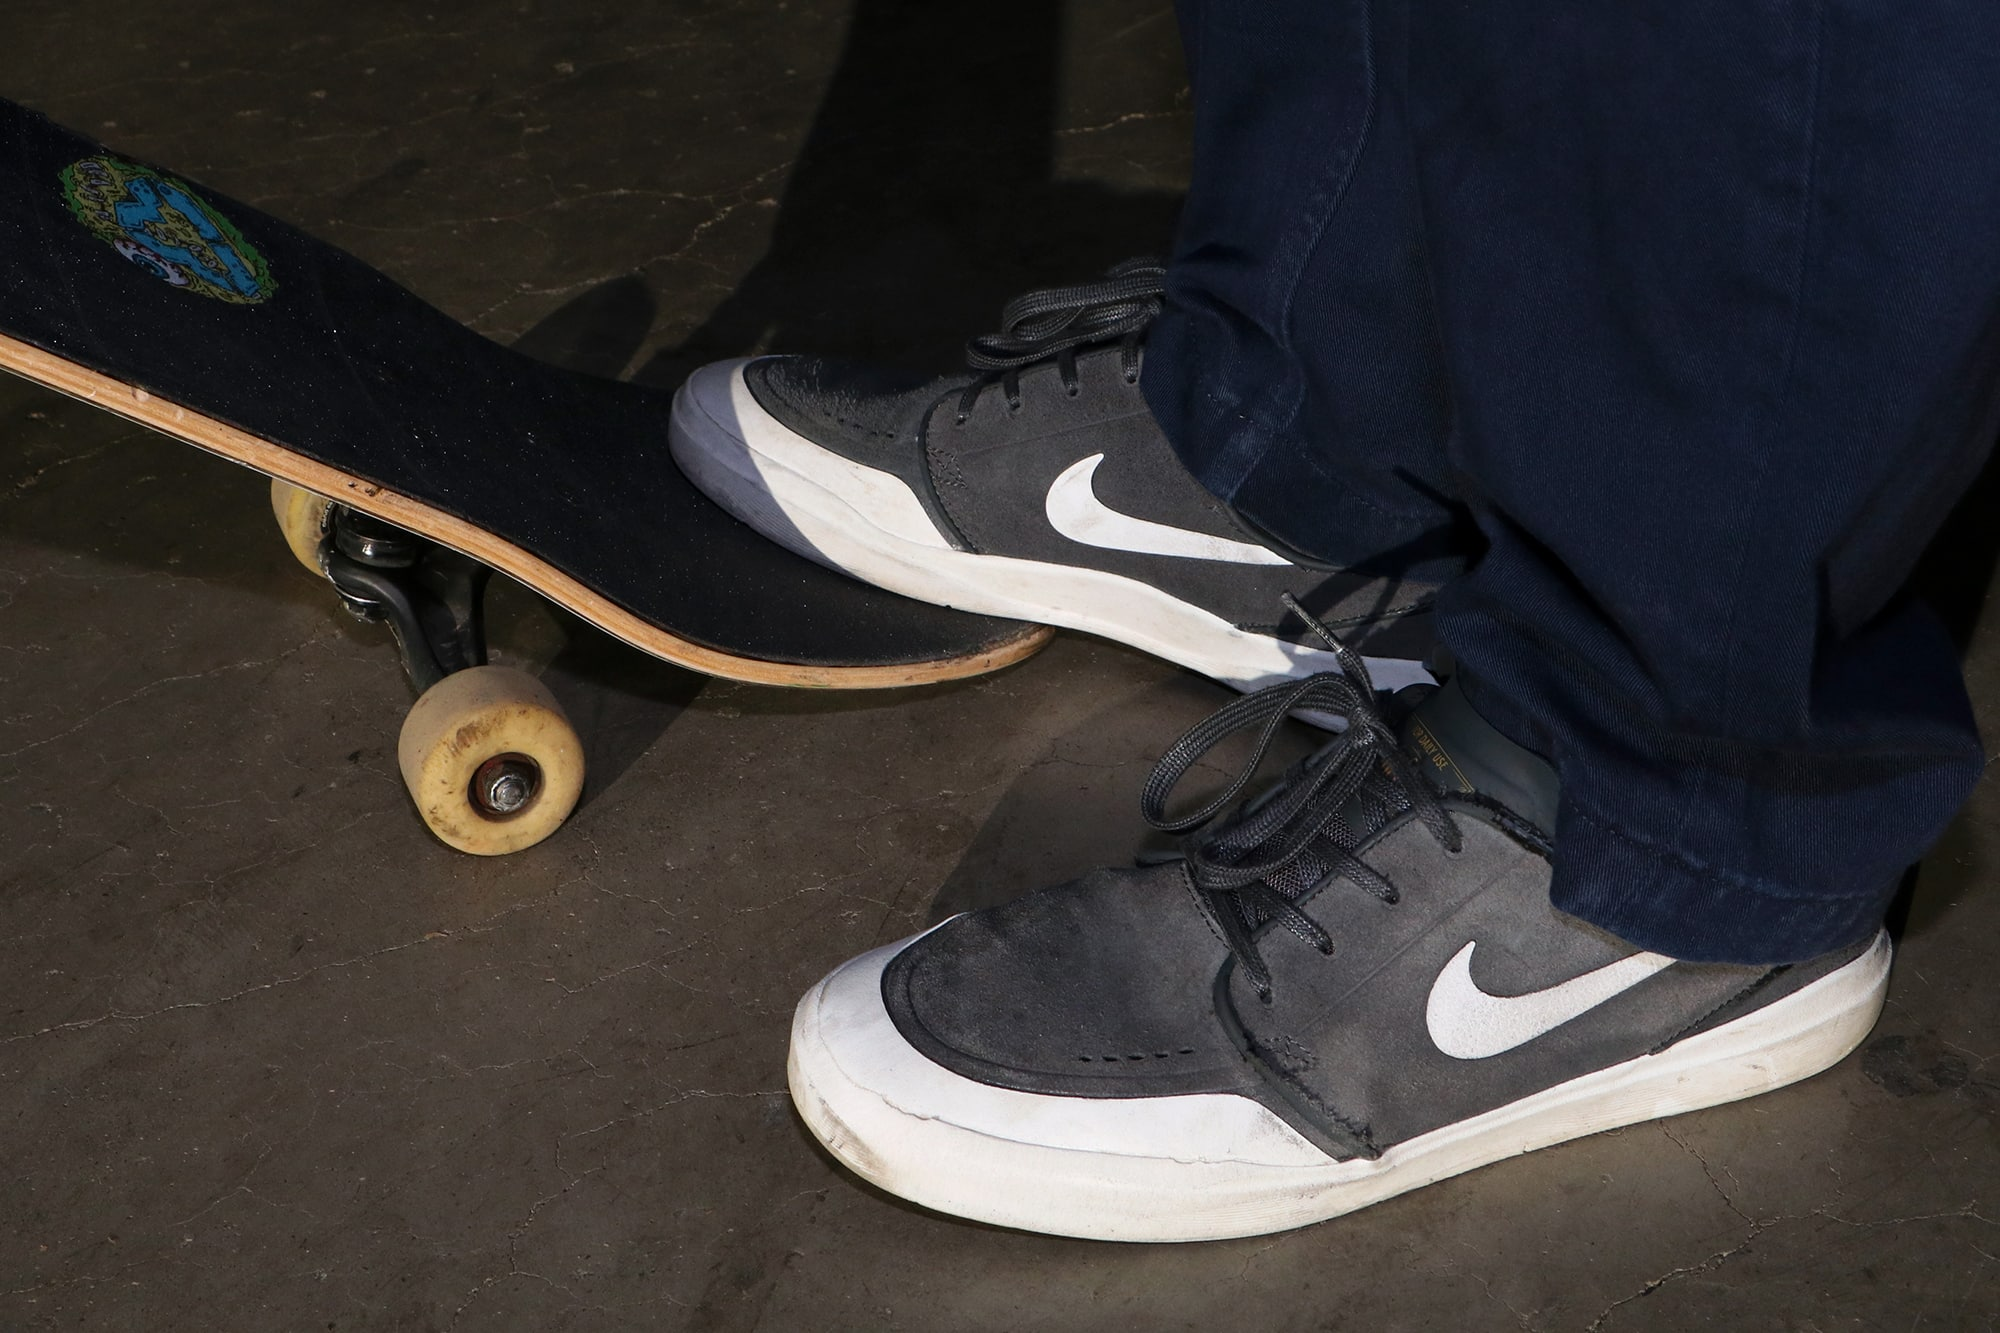 Nike Sb Janoski Shoe Review